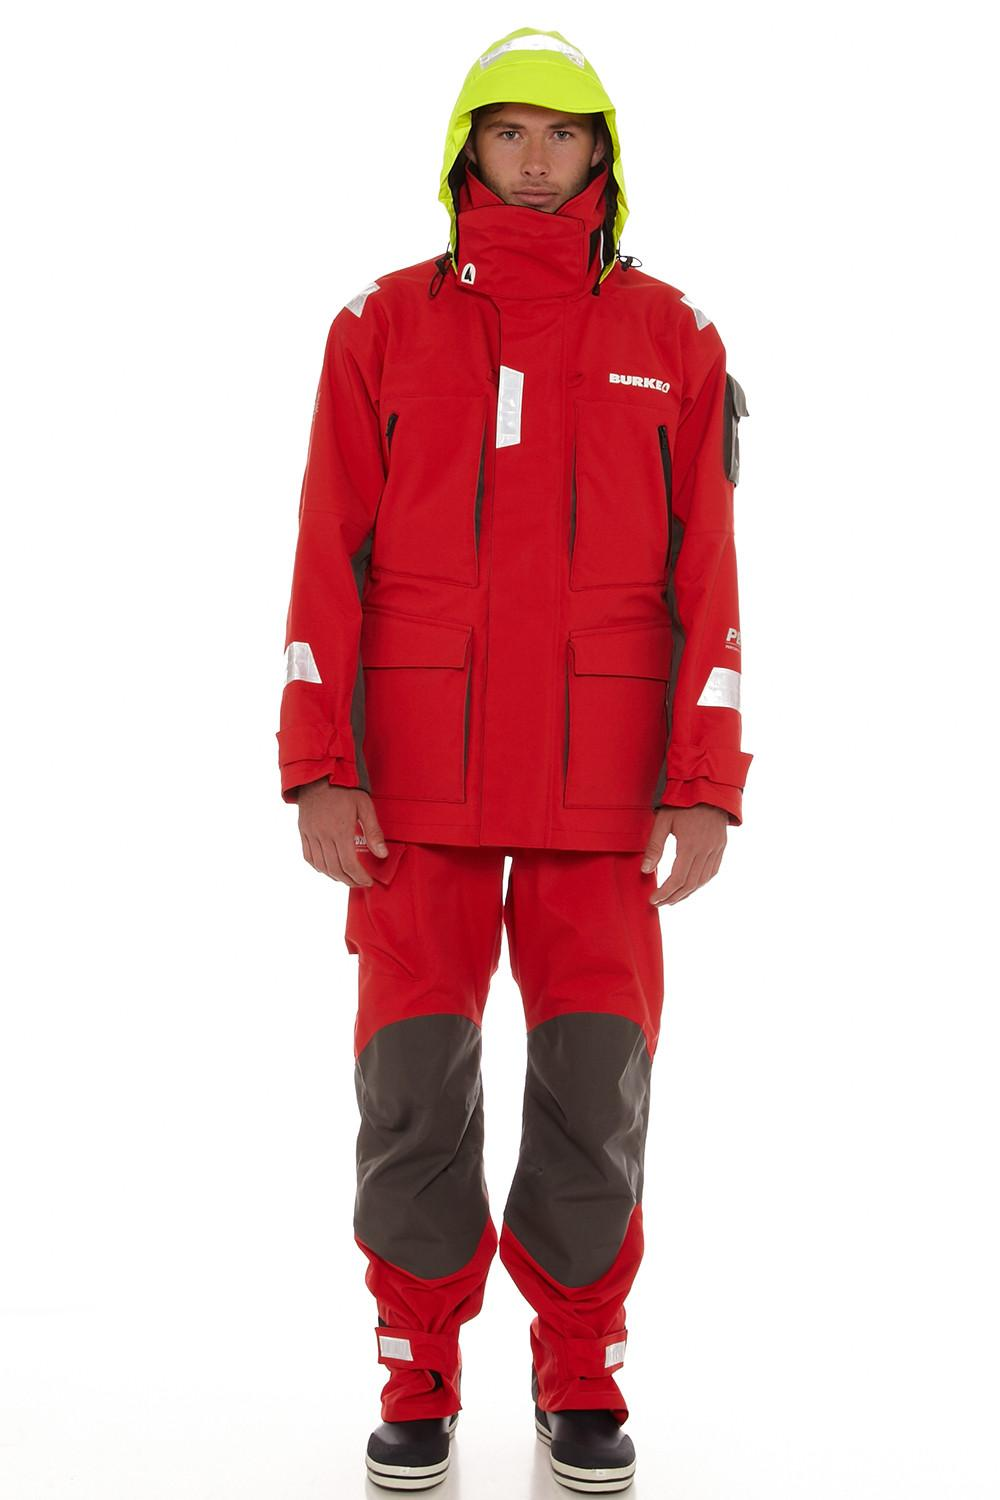 Marine Layer Clothing Reviews | Marine World